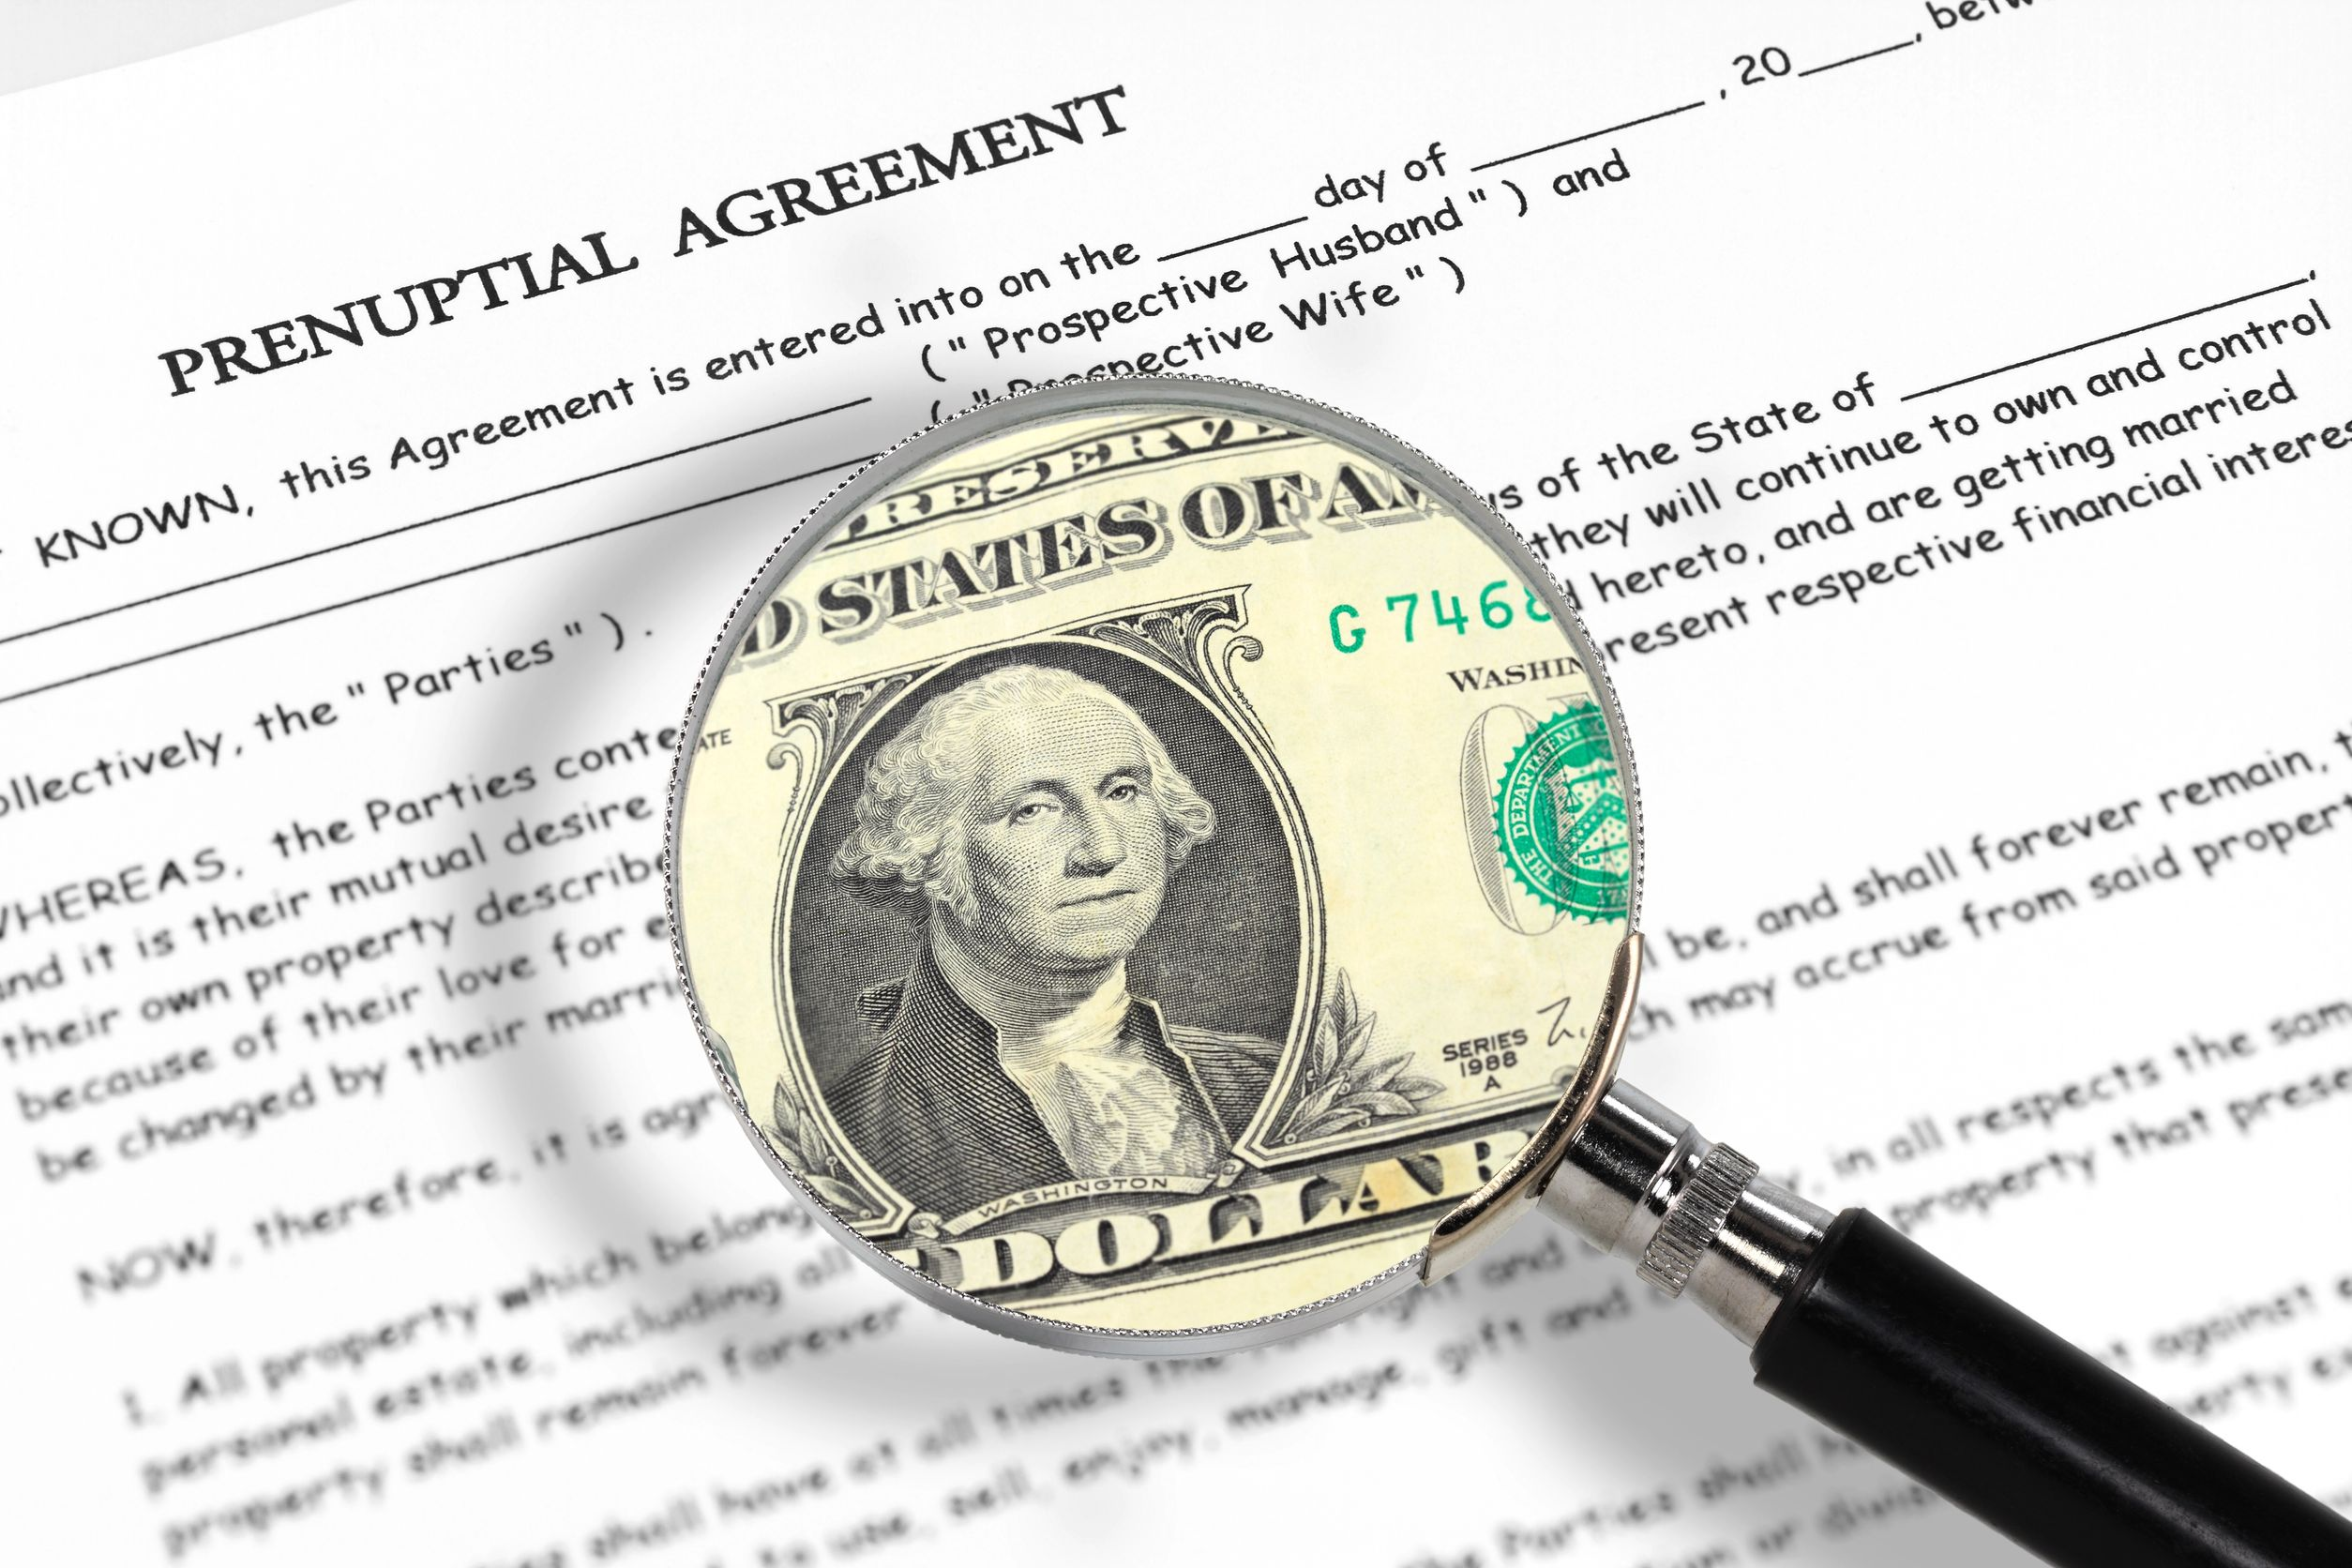 When to start the prenuptial agreement process?